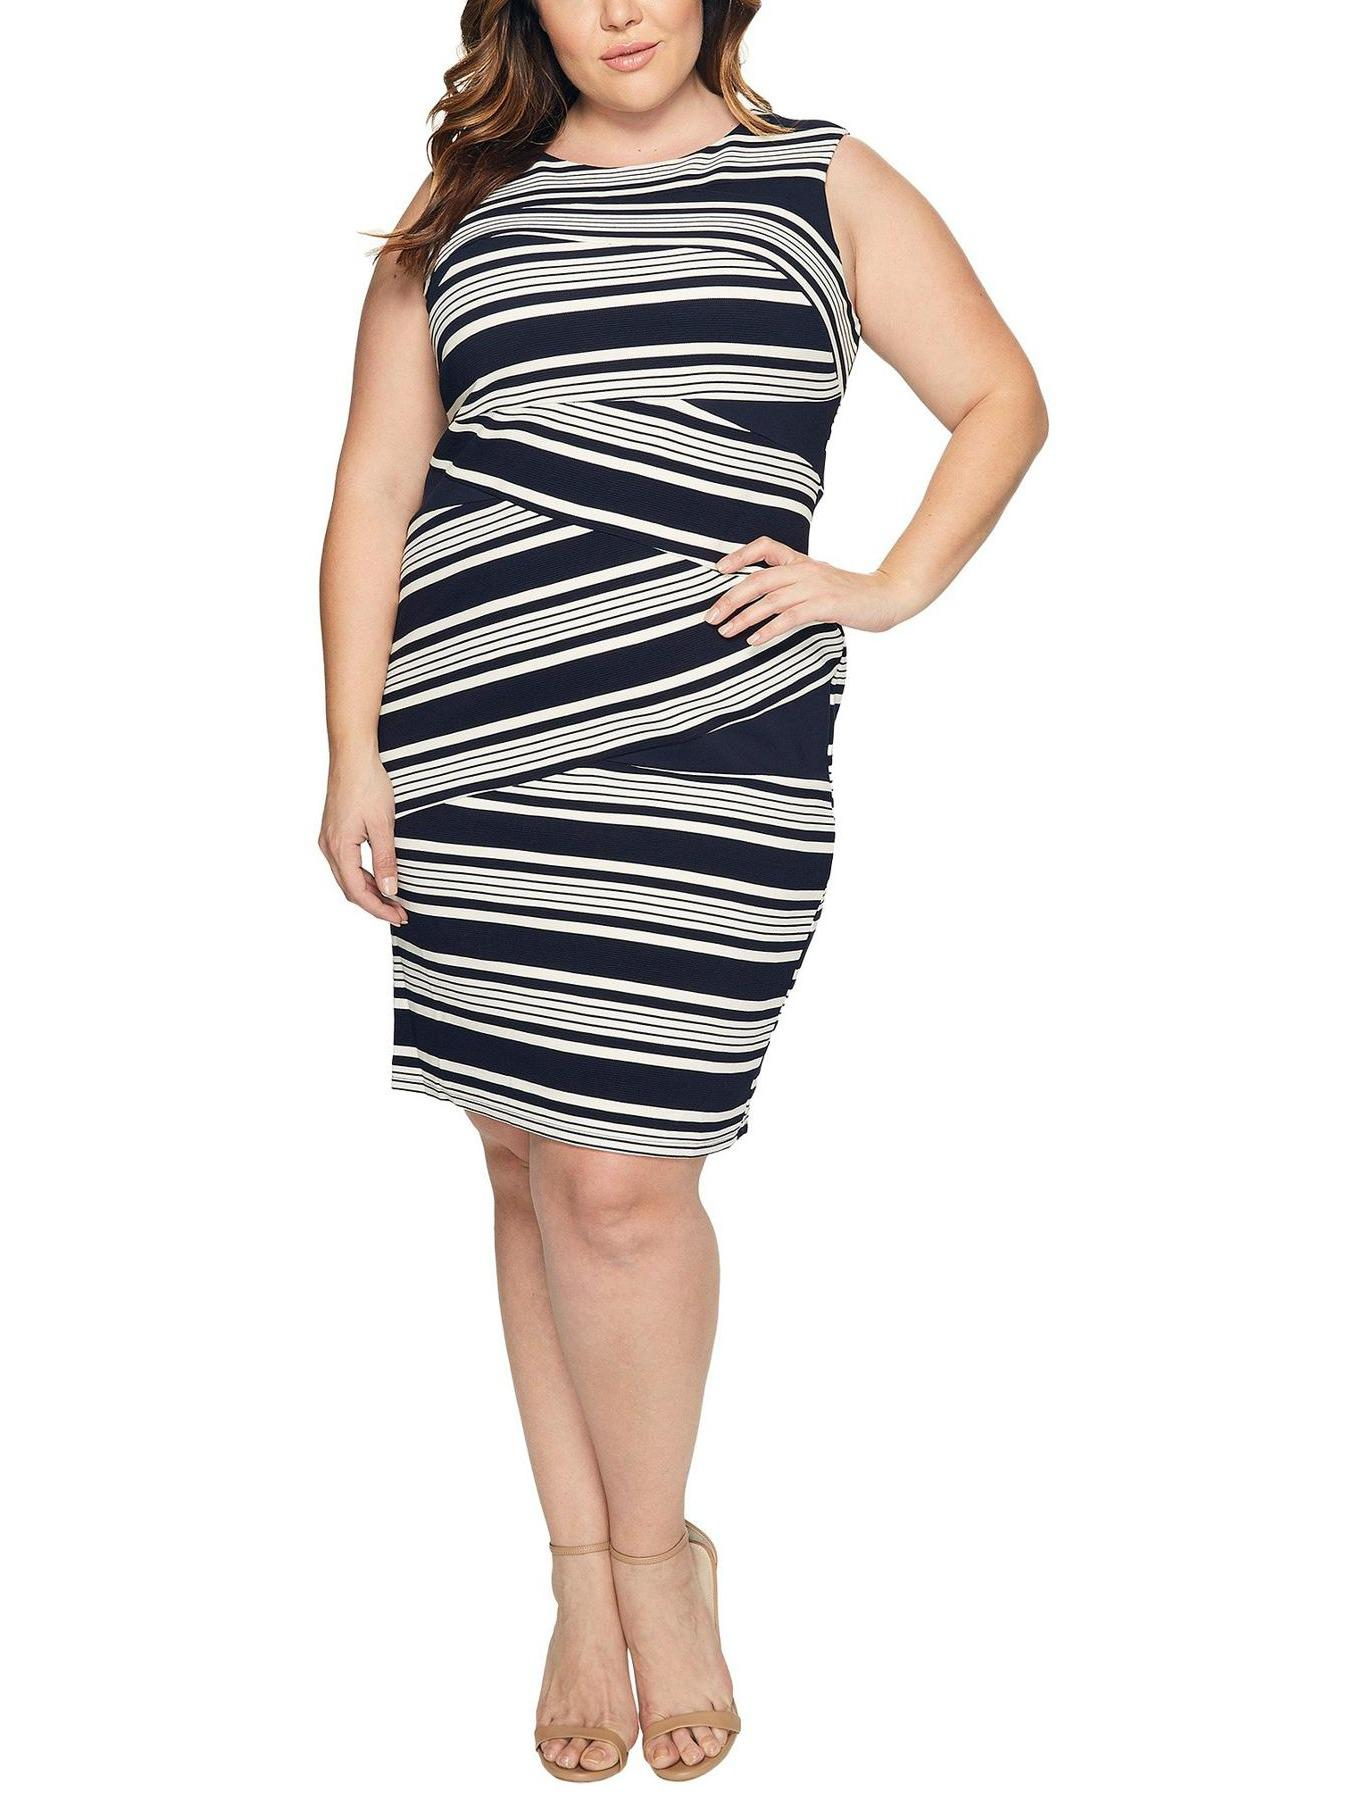 Adrianna Papell high end designer plus-size women's clothing rental